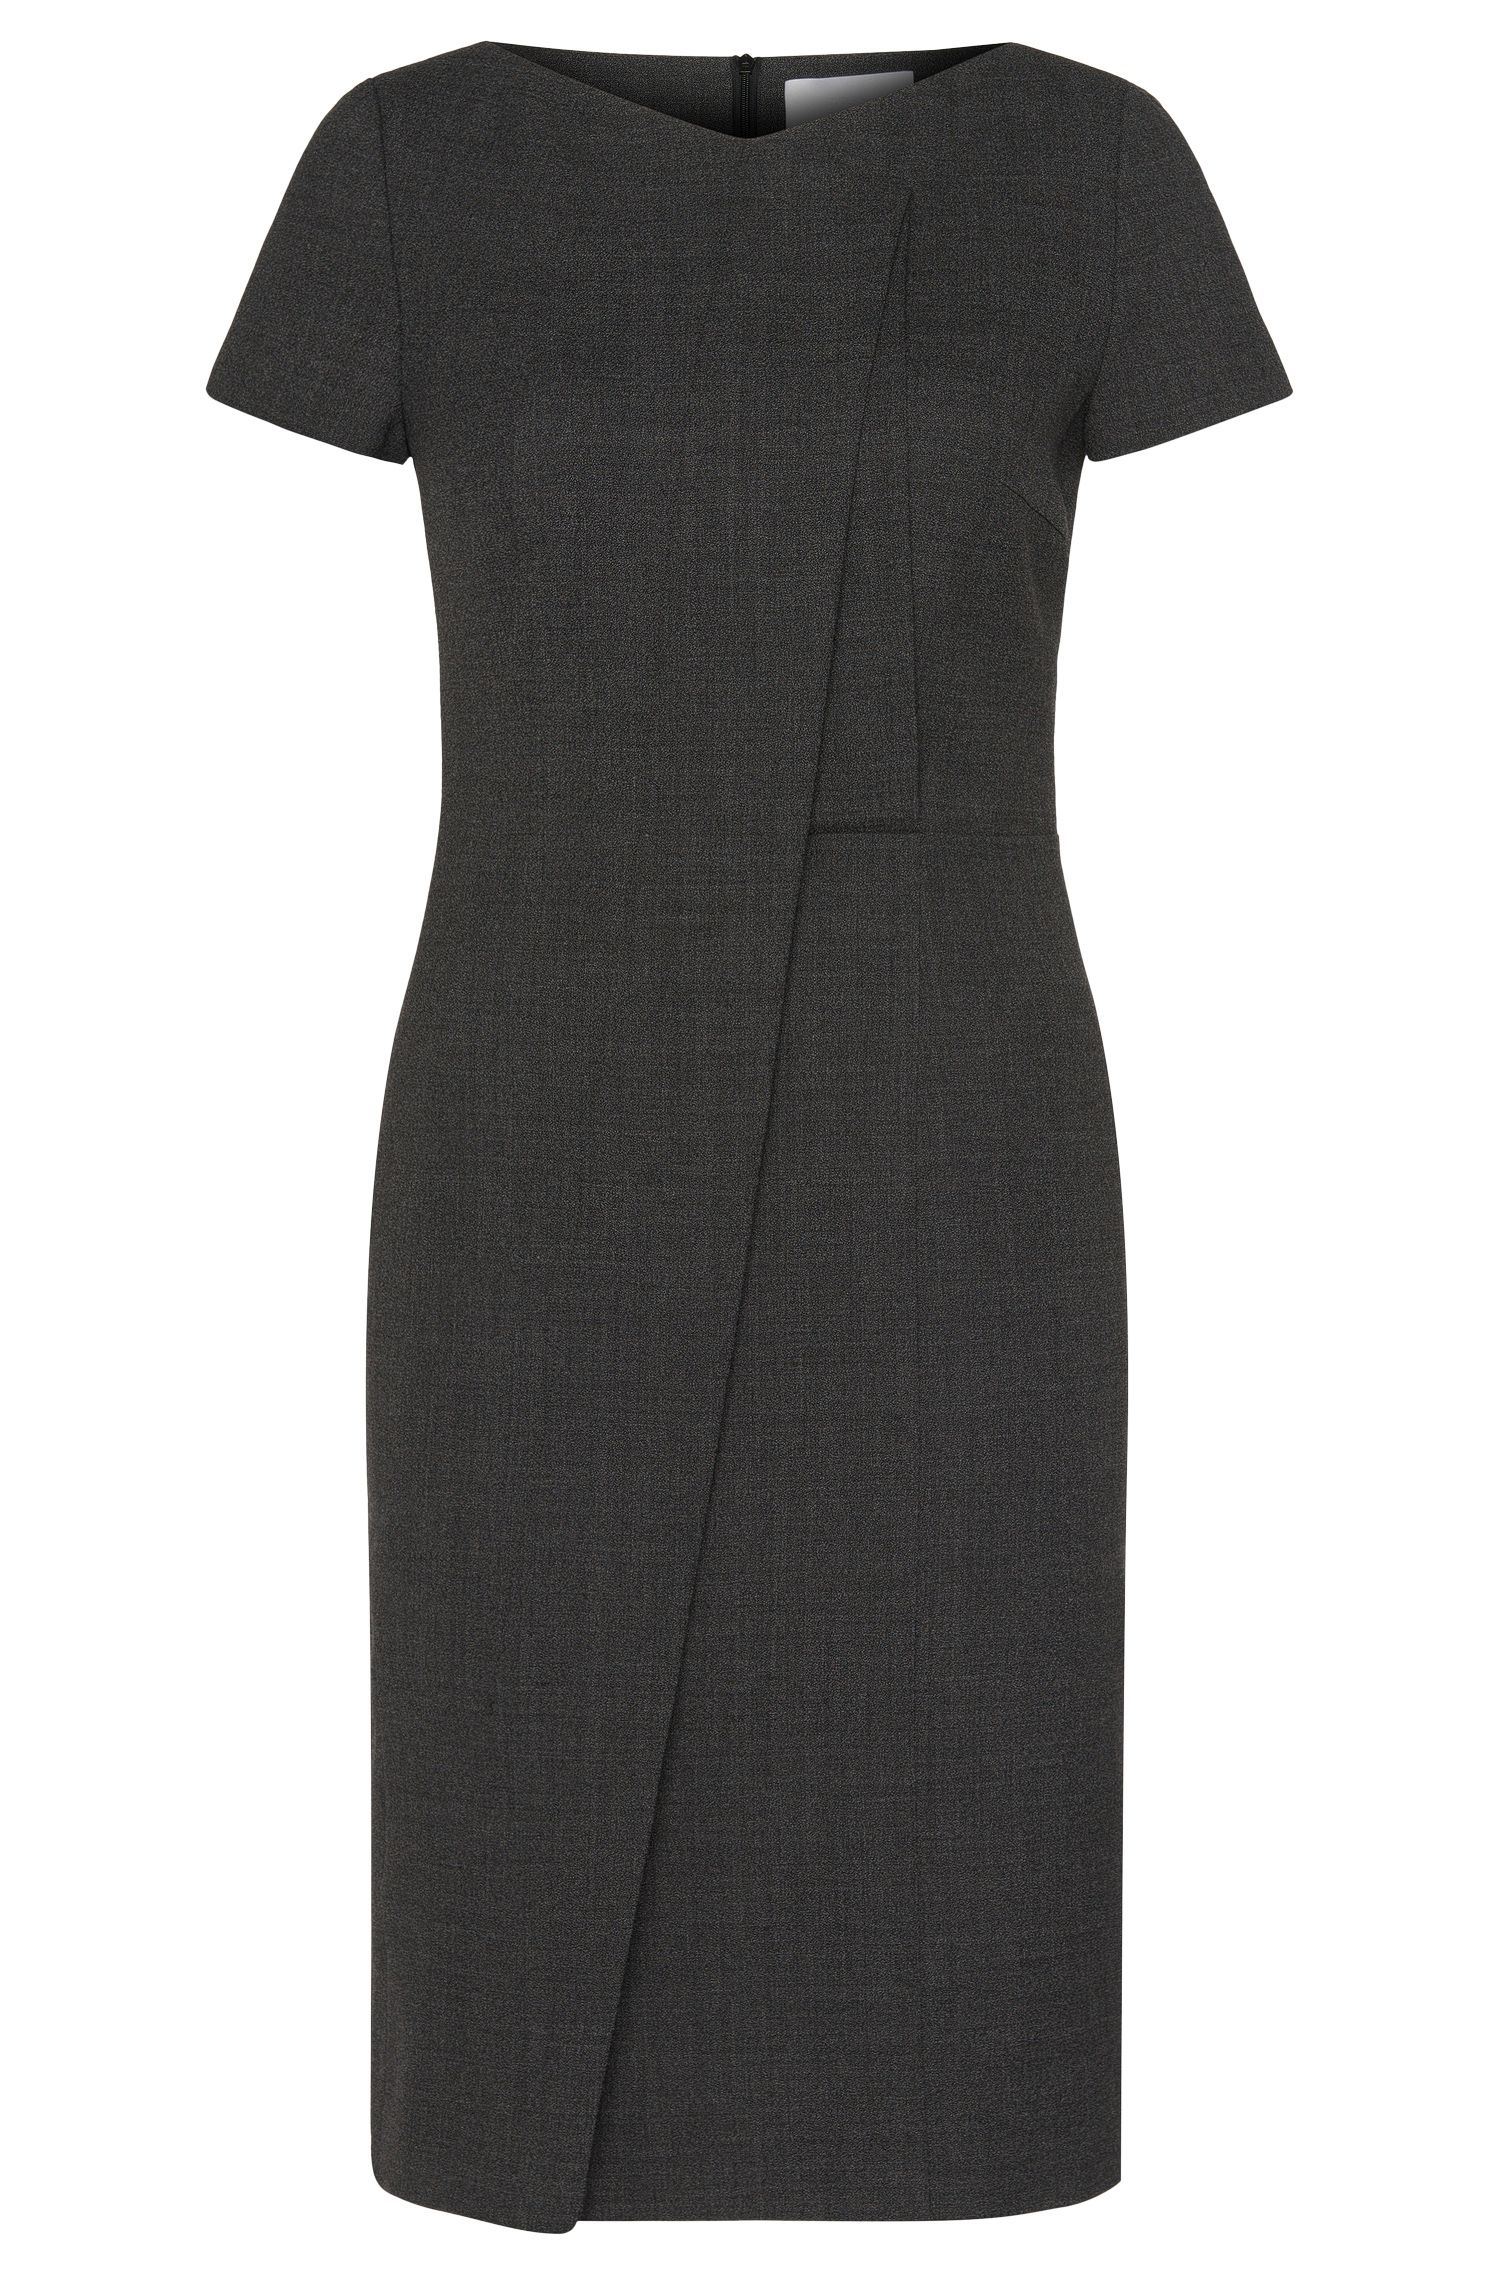 'Dadela' | Stretch Virgin Wool Asymmetrical Sheath Dress